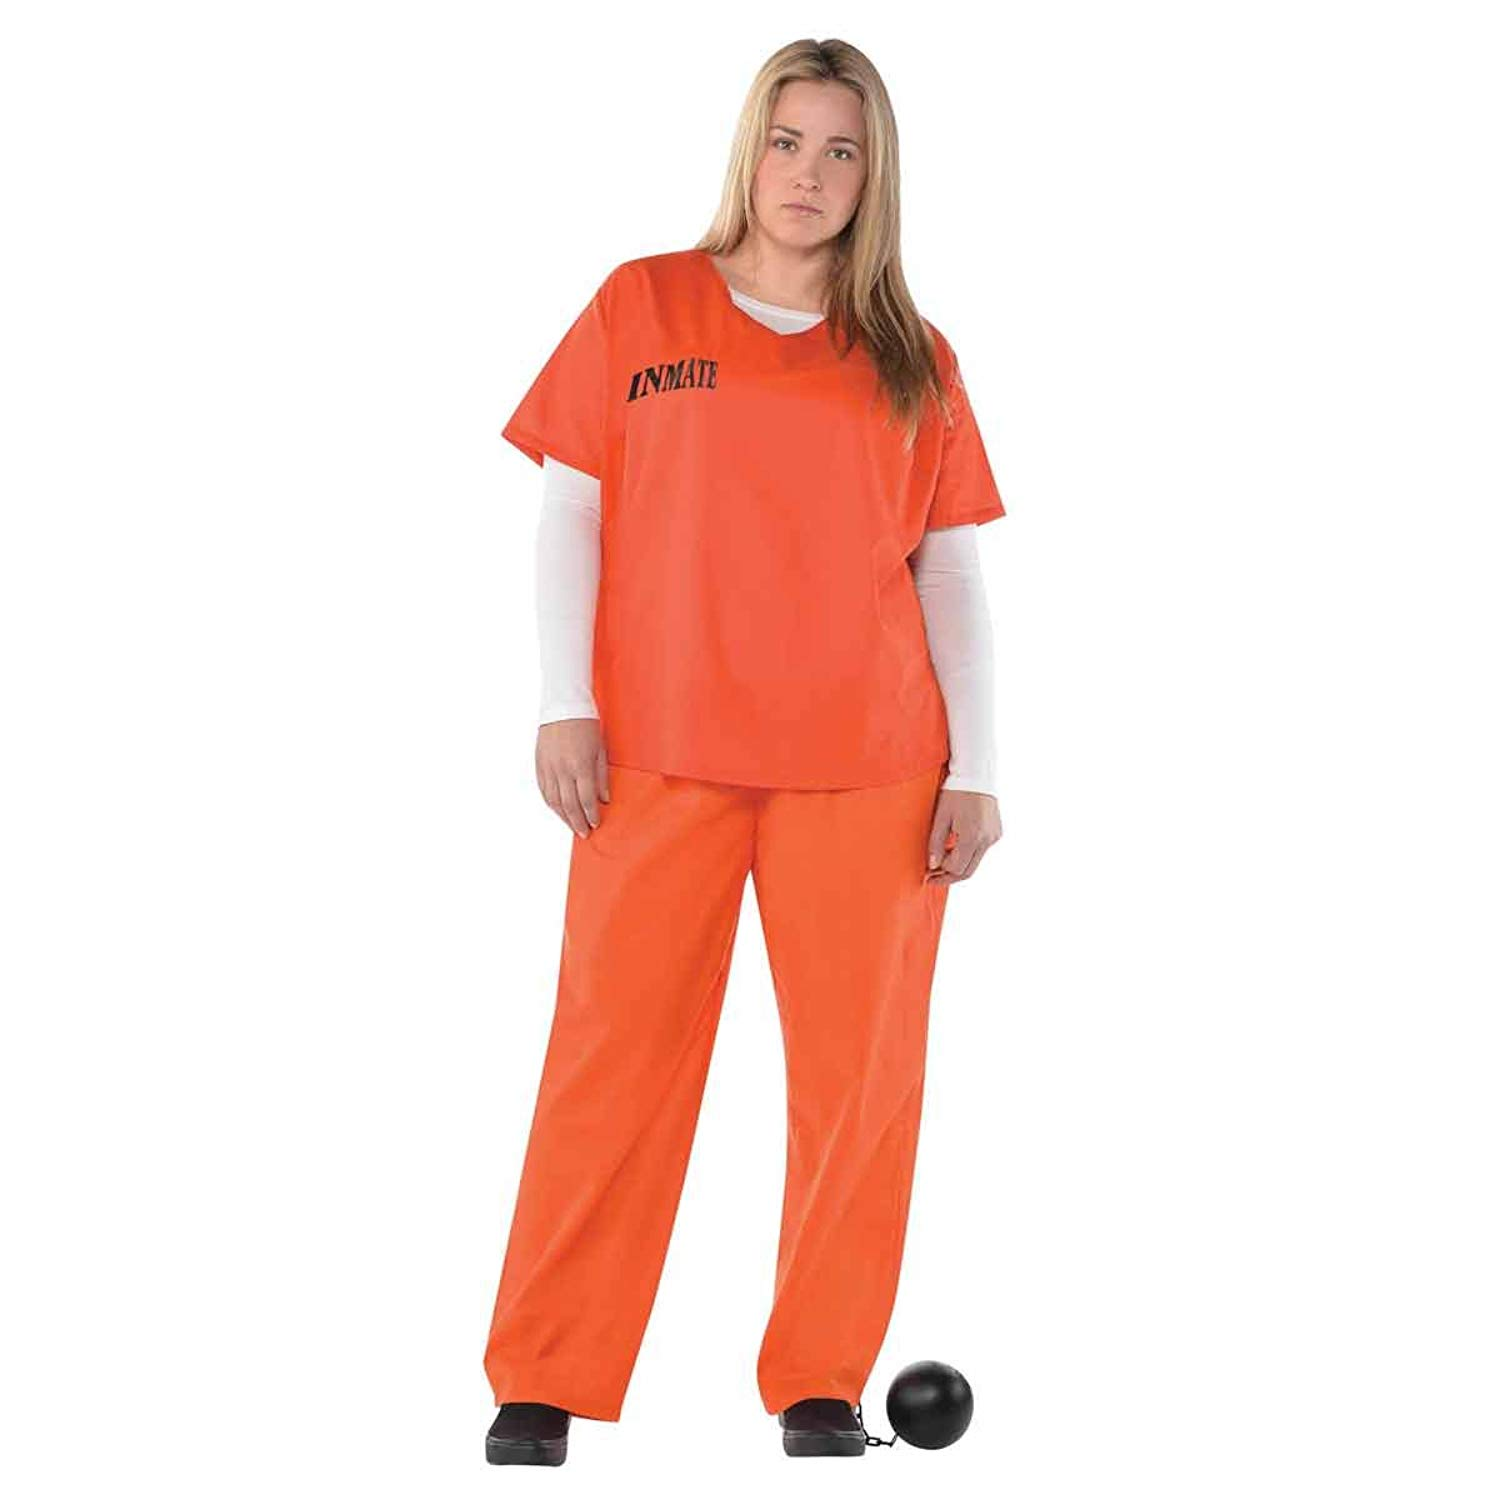 Christys Dress Up Adults Orange Inmate Costumeの画像